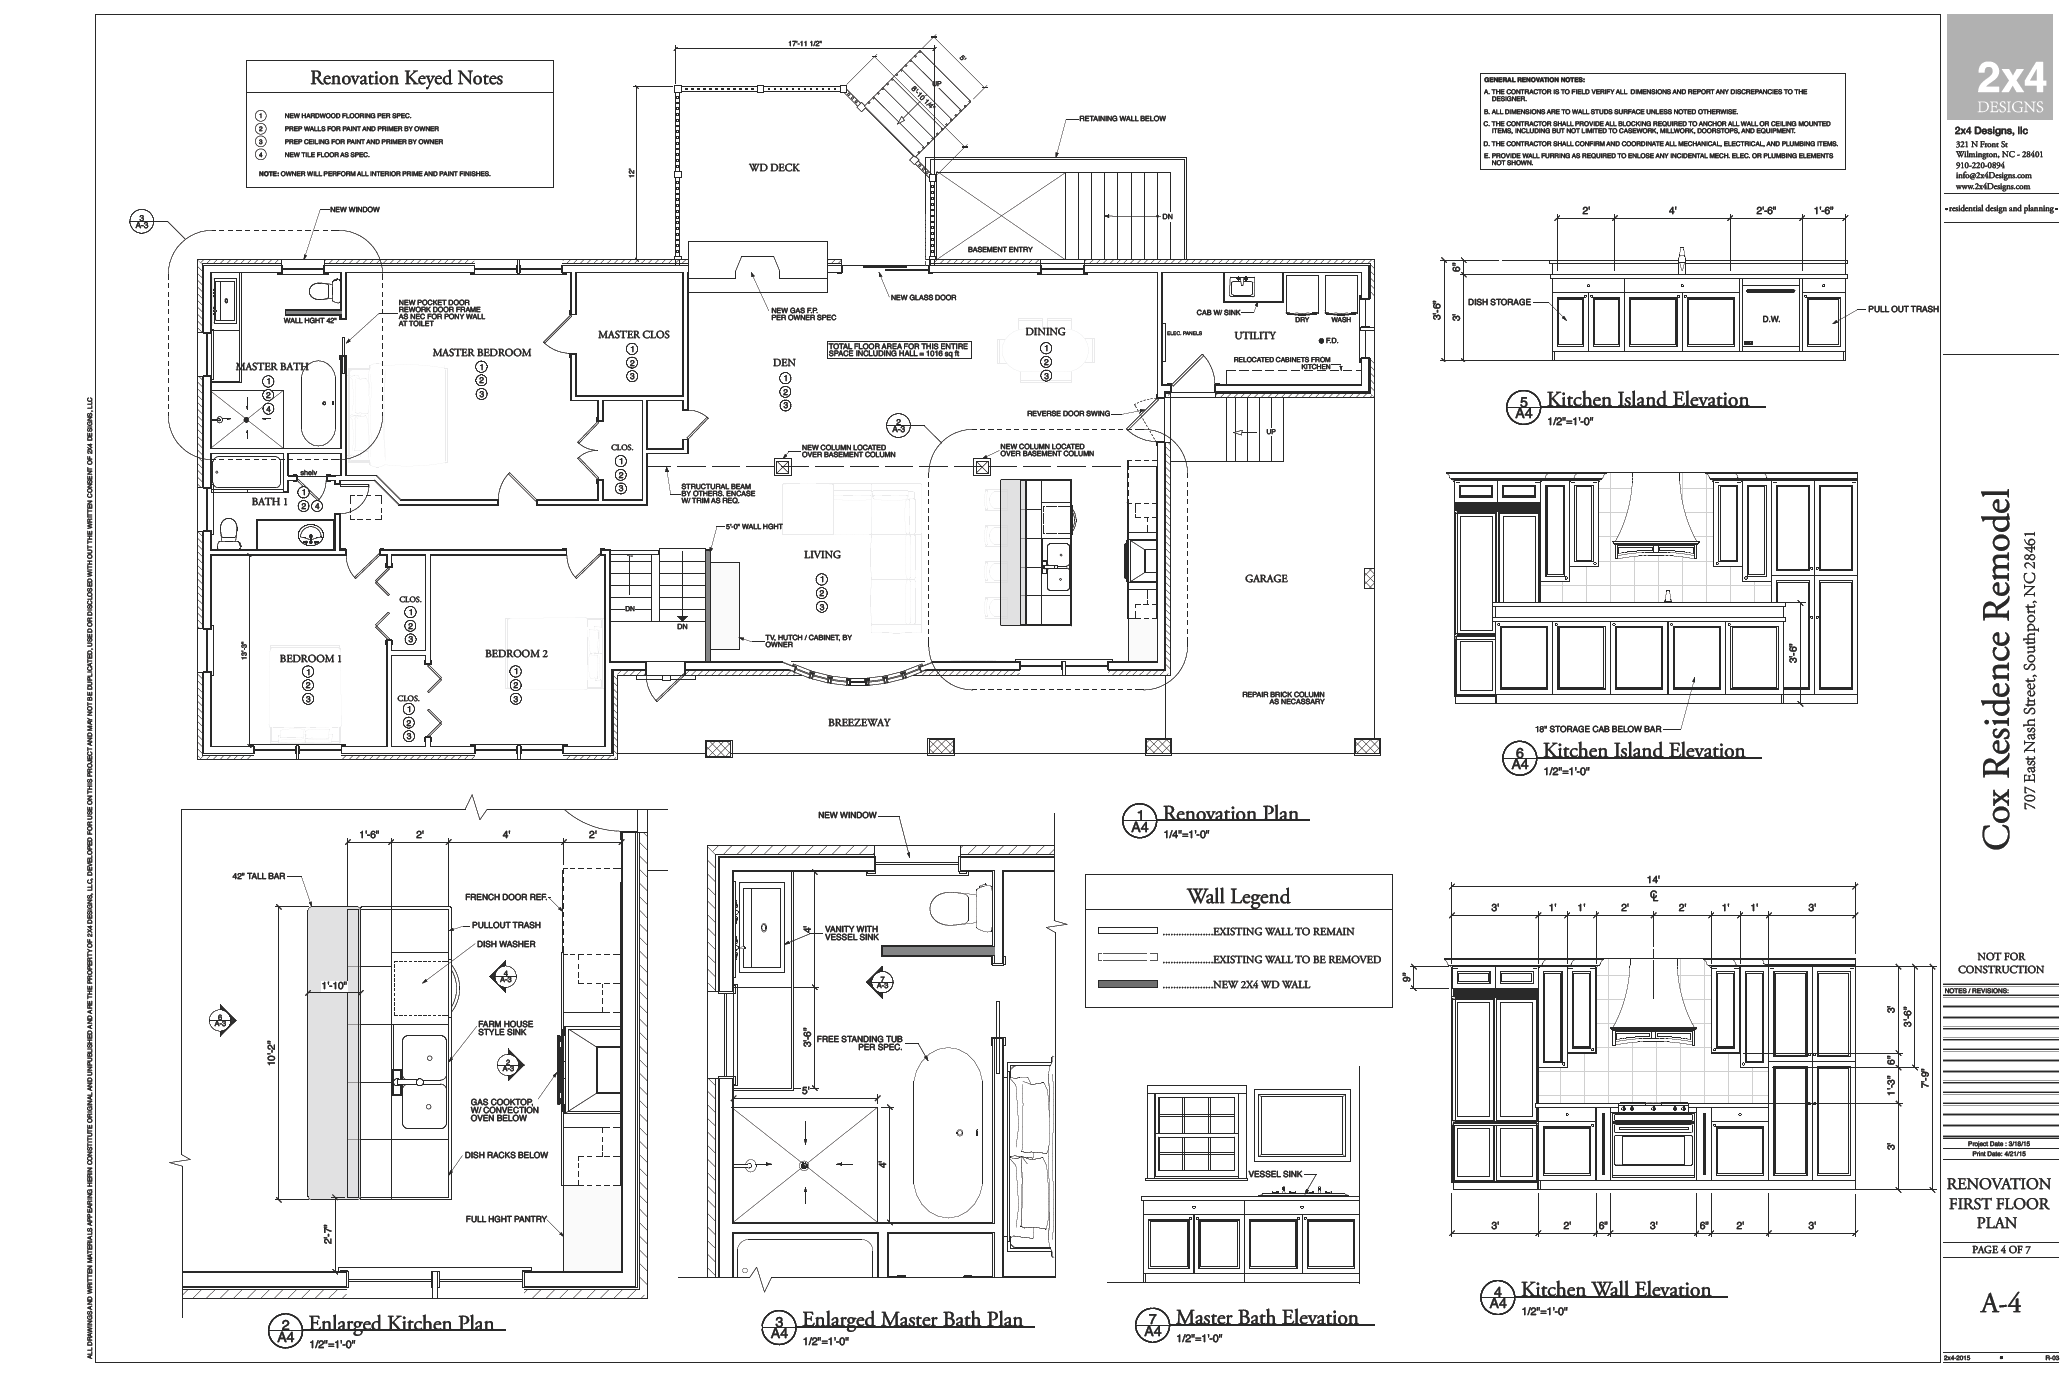 REMODEL FLOOR PLANS AND CABINET ELEVATIONS